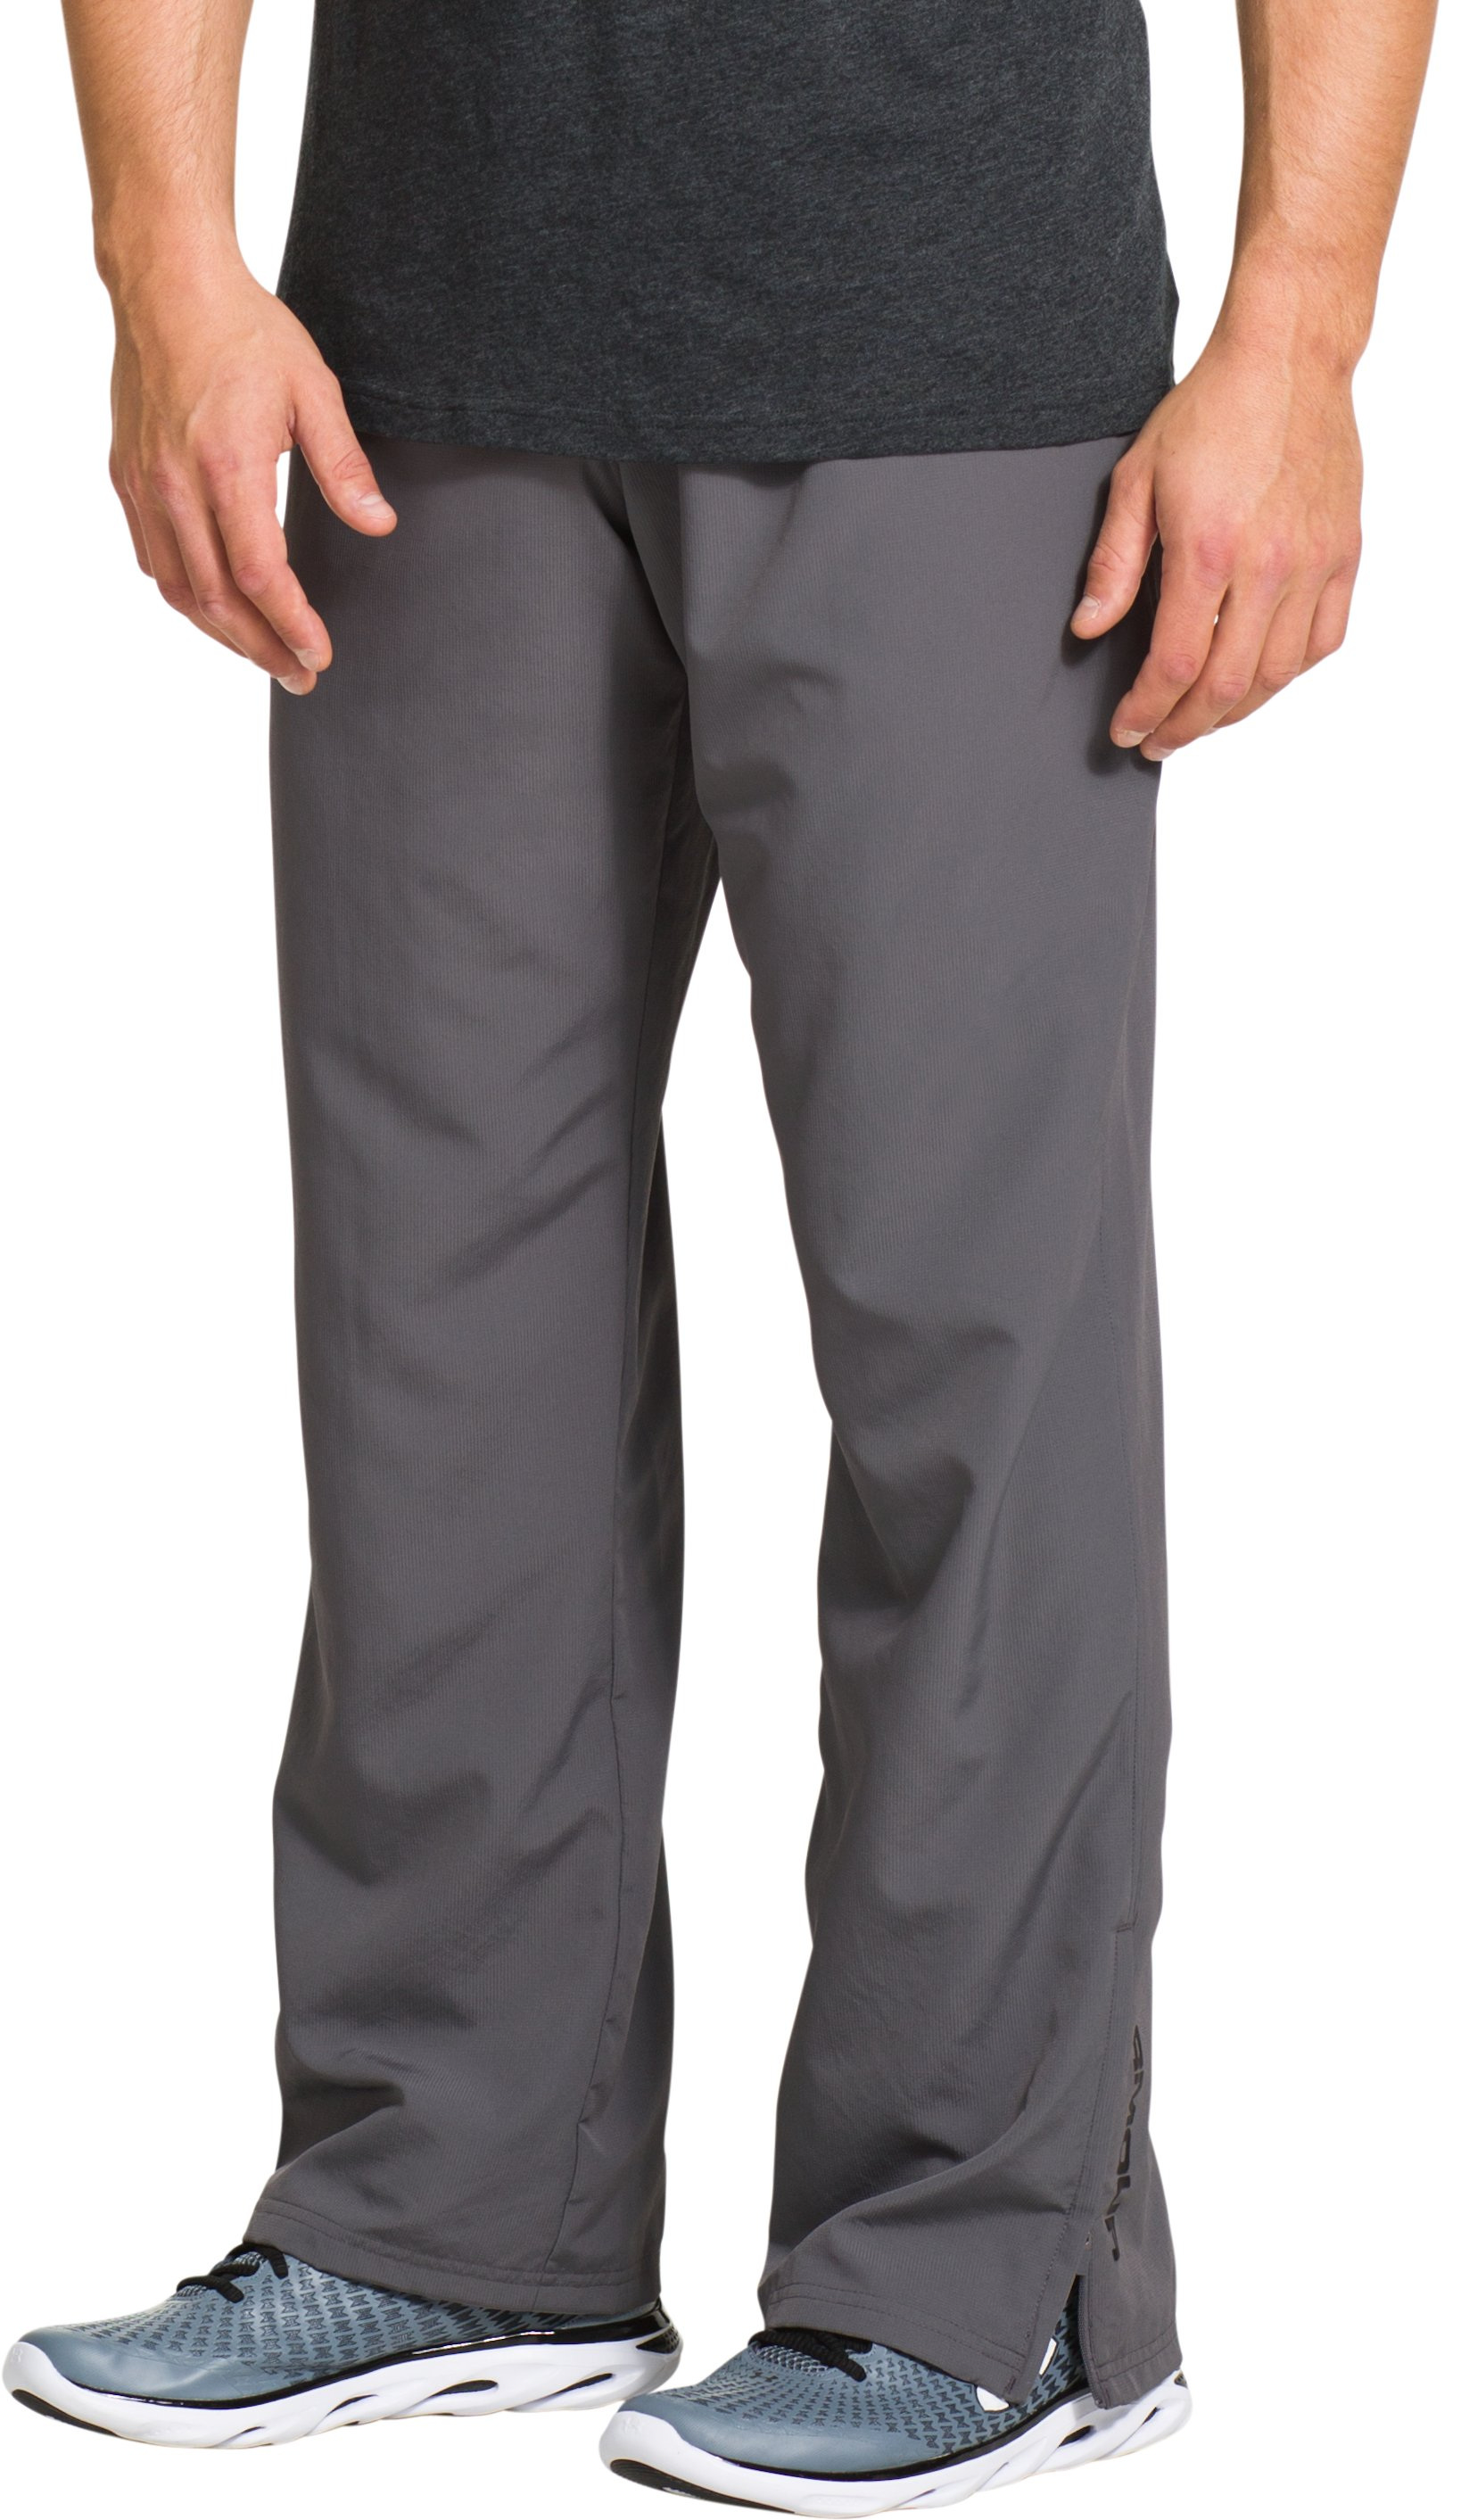 graphite pants Men's UA Vital Warm-Up Pants great color ,...Nice fit...Warm Ups